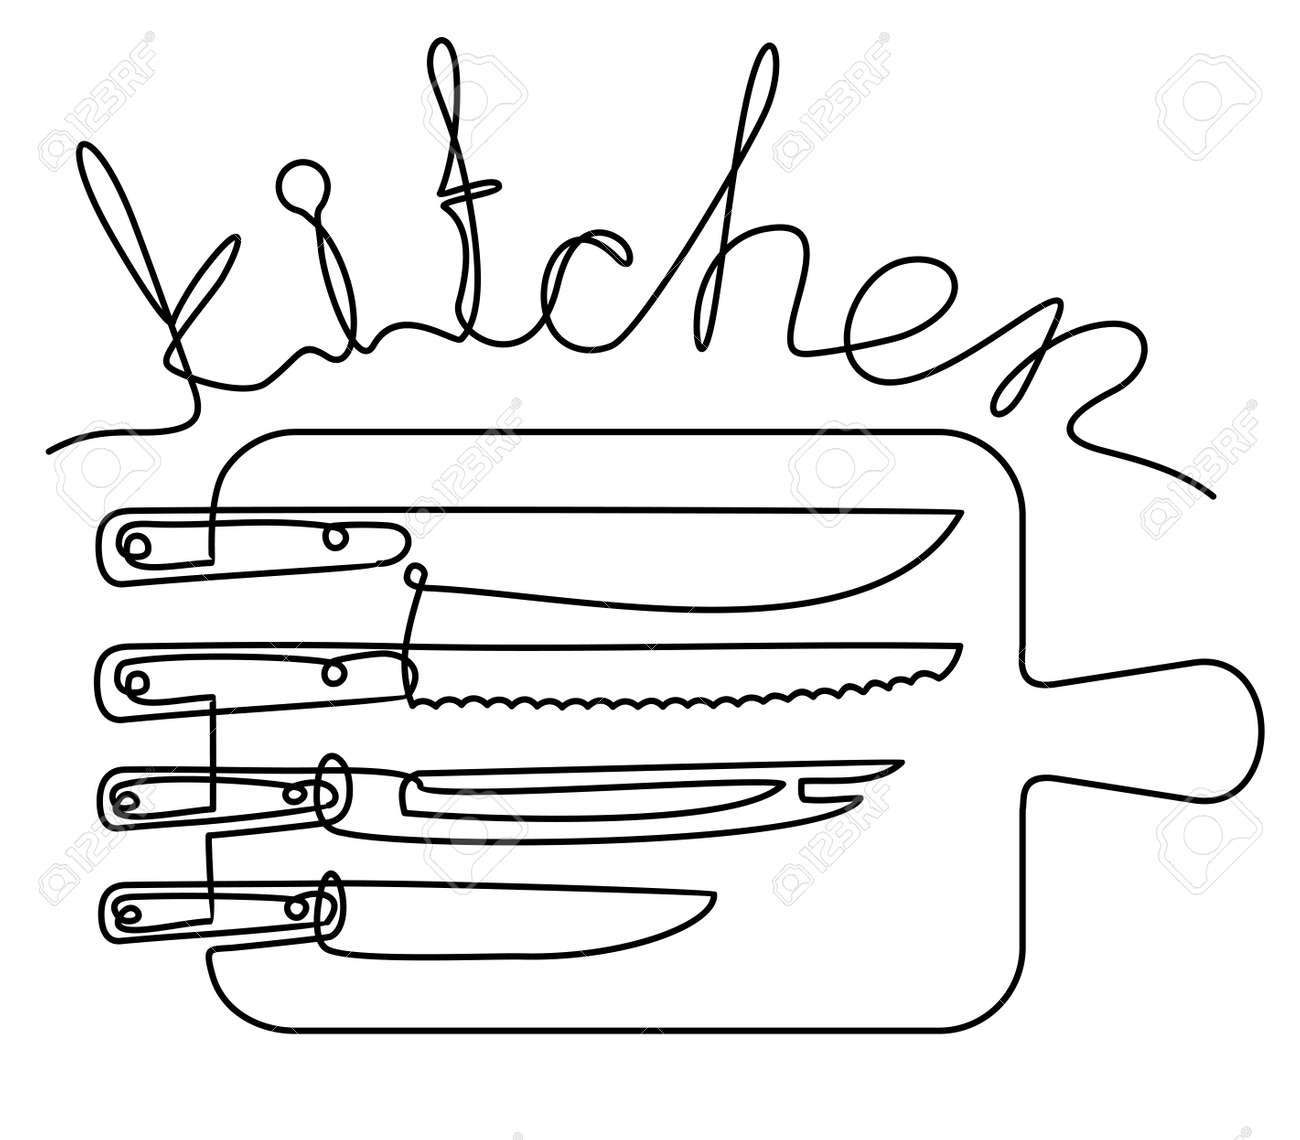 Kitchen lettering in one line. Continuous line art or One Line Drawing of Set of knives and cutting board. Linear style and Hand drawn Vector illustrations - 169743689